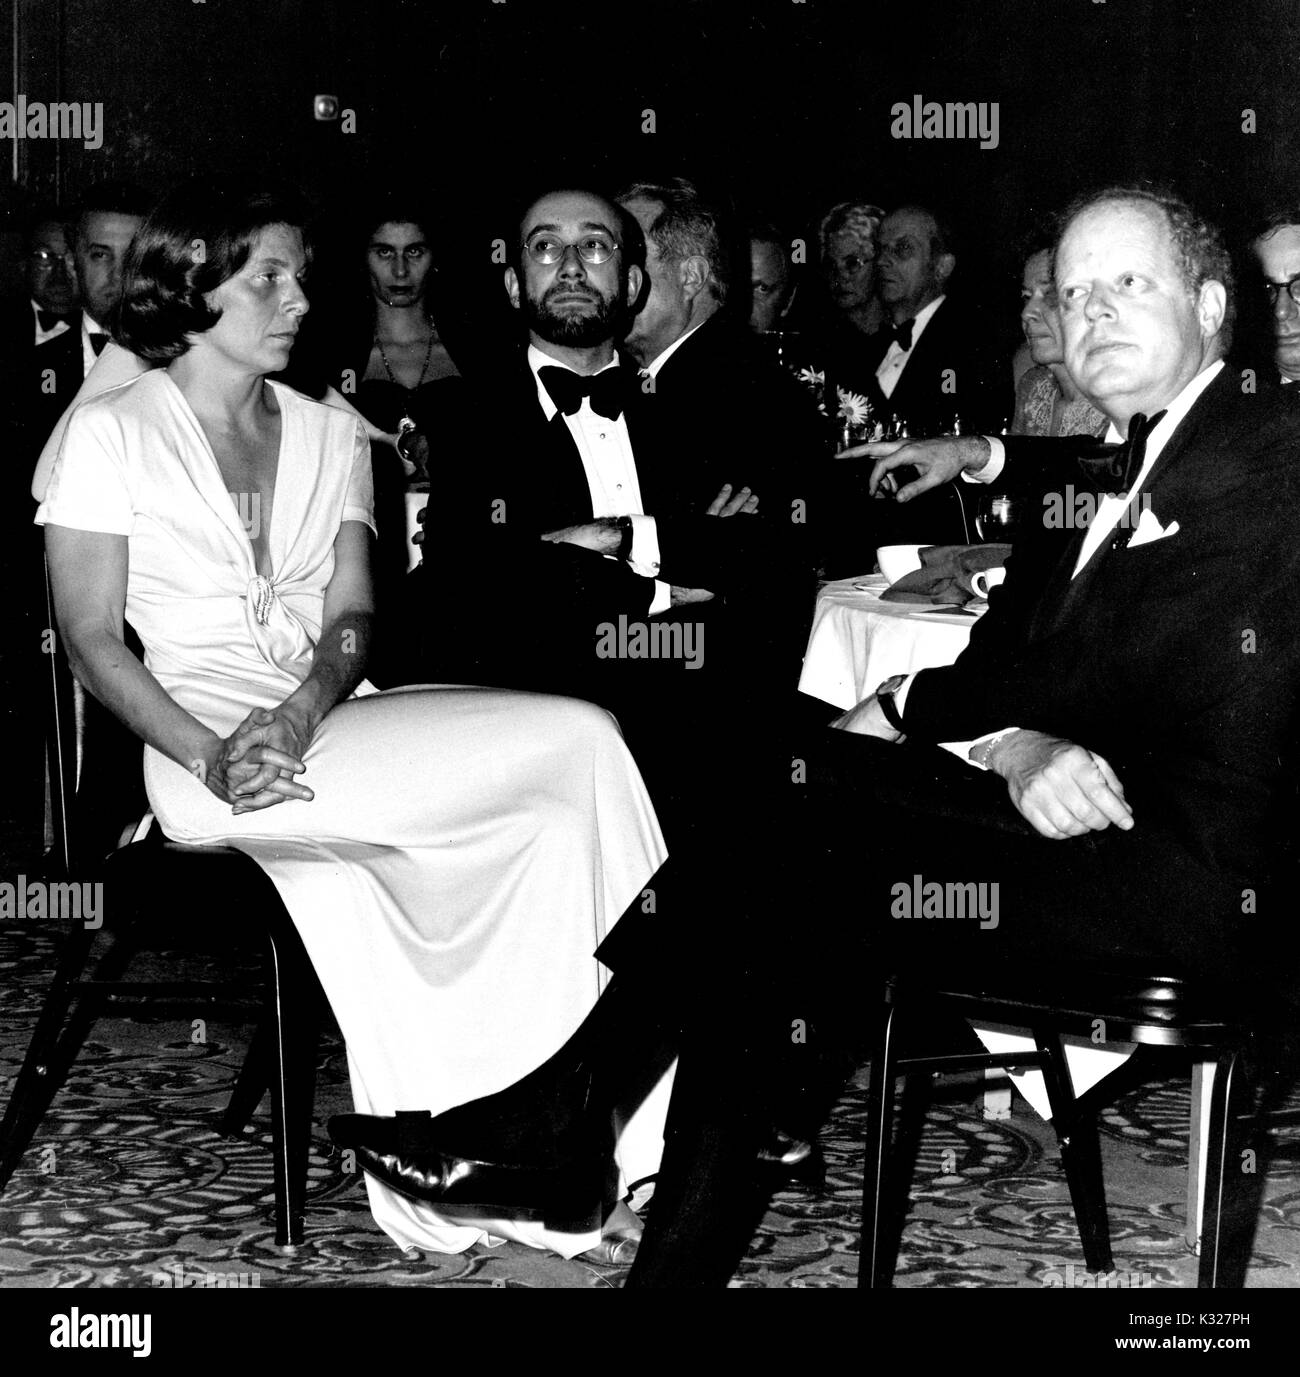 Political, social, and civic figure Eleanor Hutzler (left), her husband and chairman of Hutzler Brothers department store chain Charles Hutzler (center), and art historian and museum director Tom Freudenheim (right) sit around a table during Johns Hopkins University's Centennial Dinner, February 21, 1976. - Stock Image